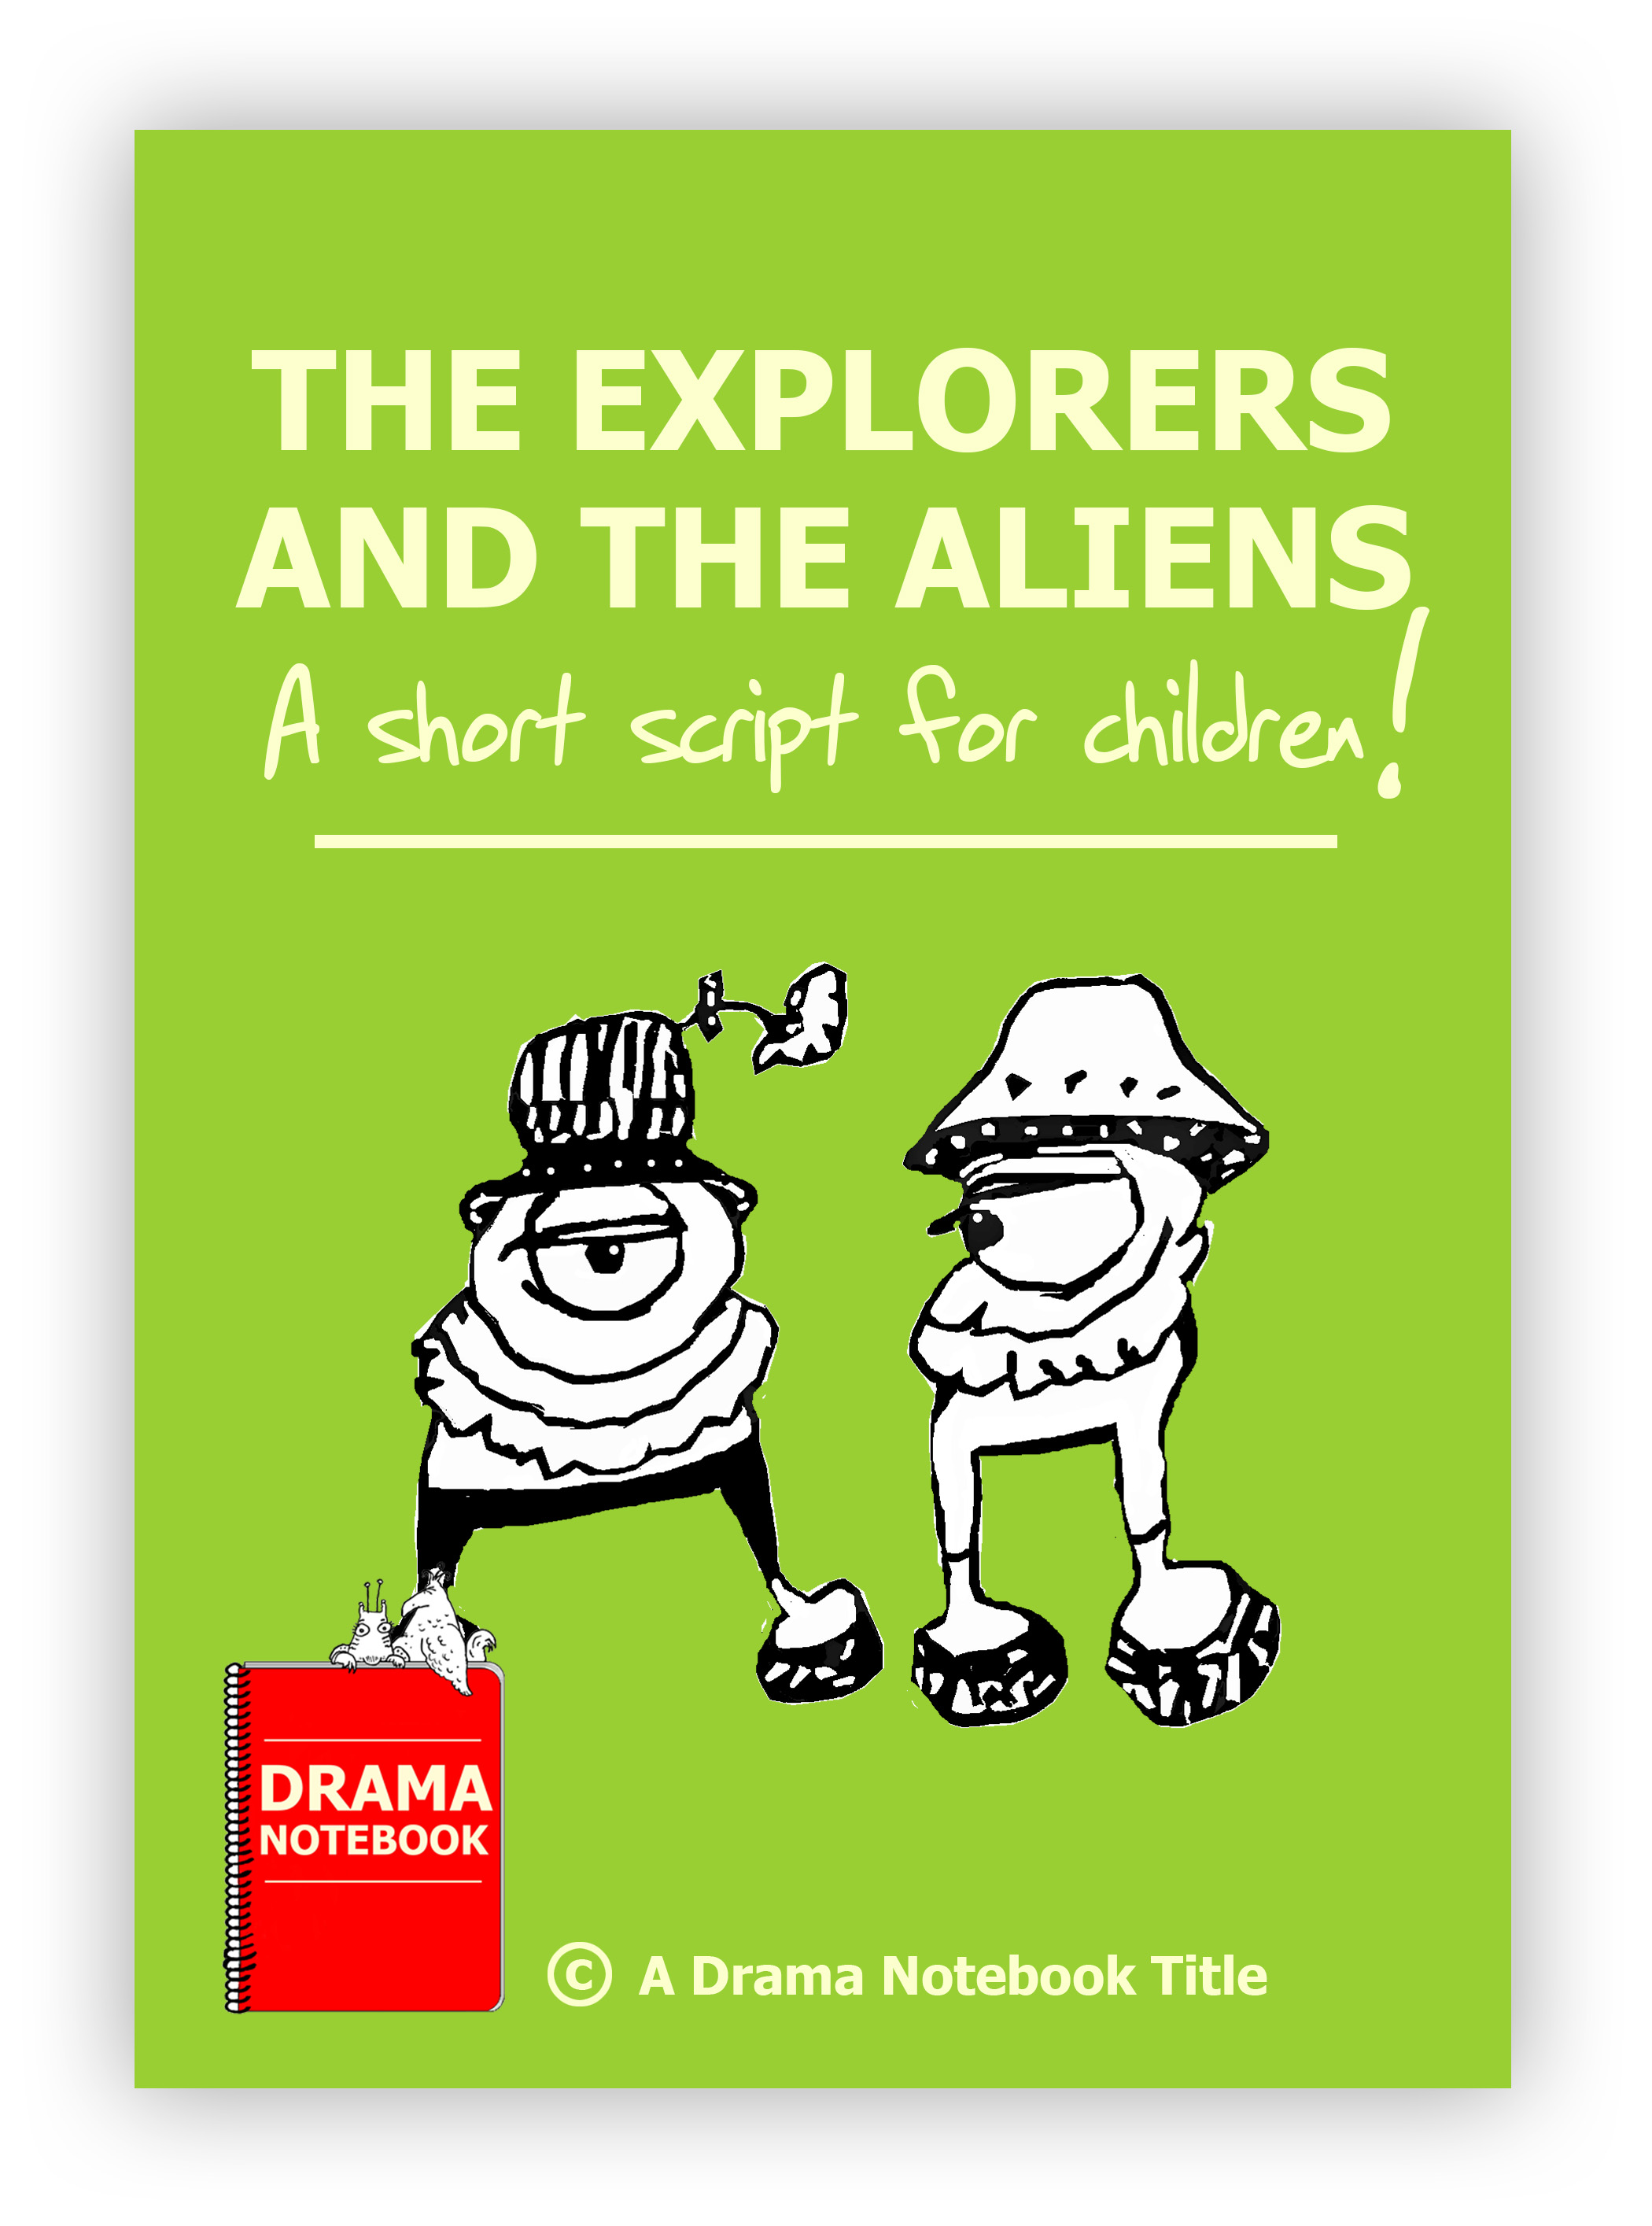 The Explorers and the Aliens